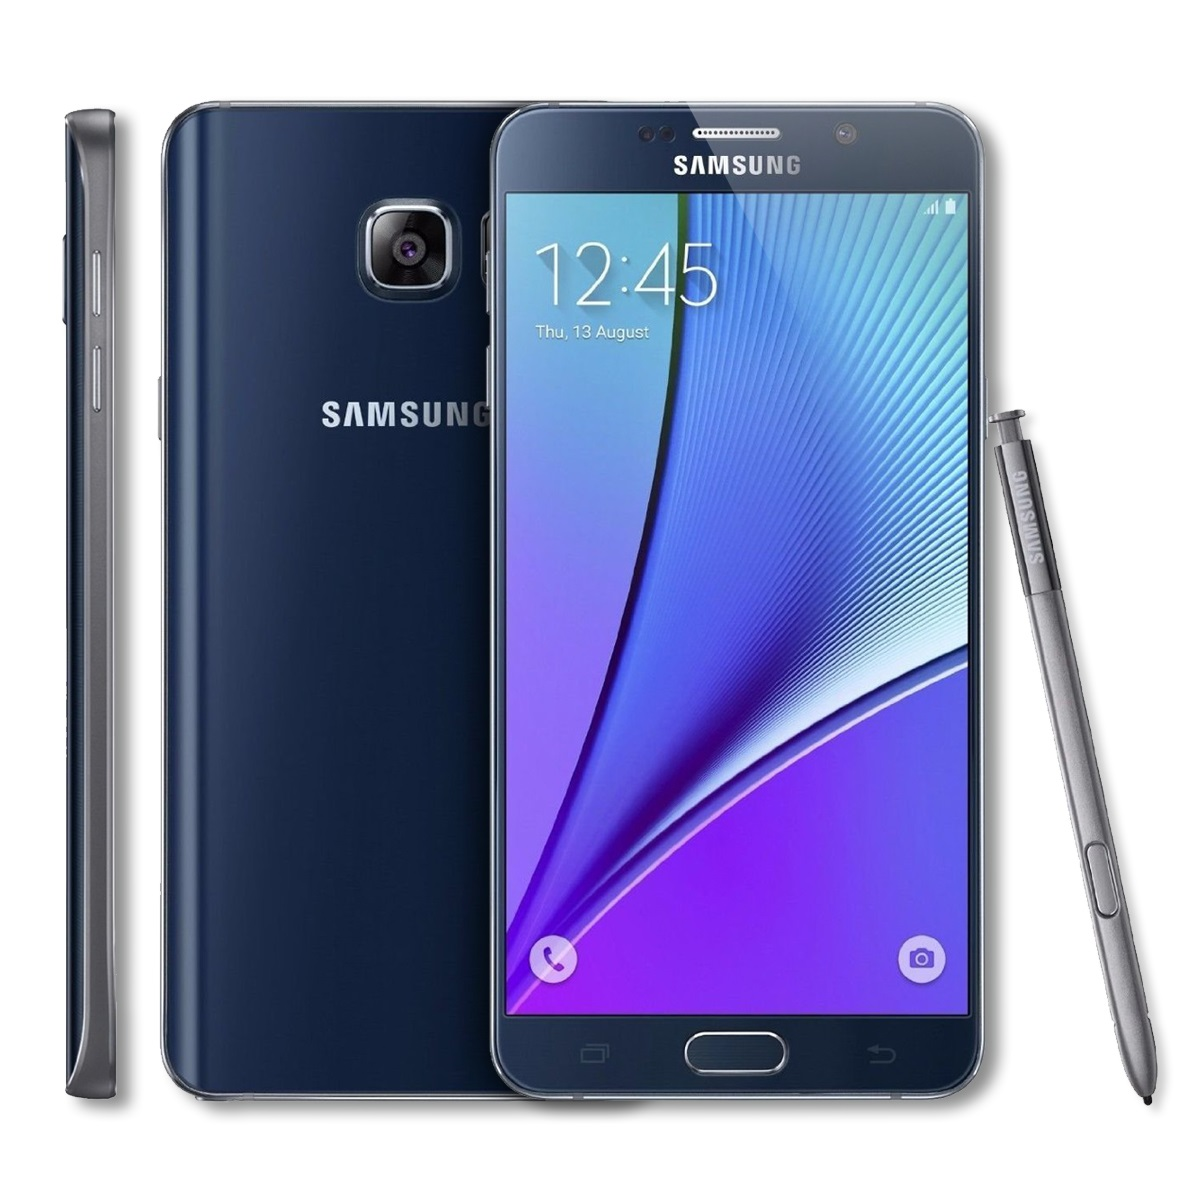 new style 73759 c15f1 UPC 887276153025 - Samsung - Galaxy Note5 4g Lte With 64gb Memory ...